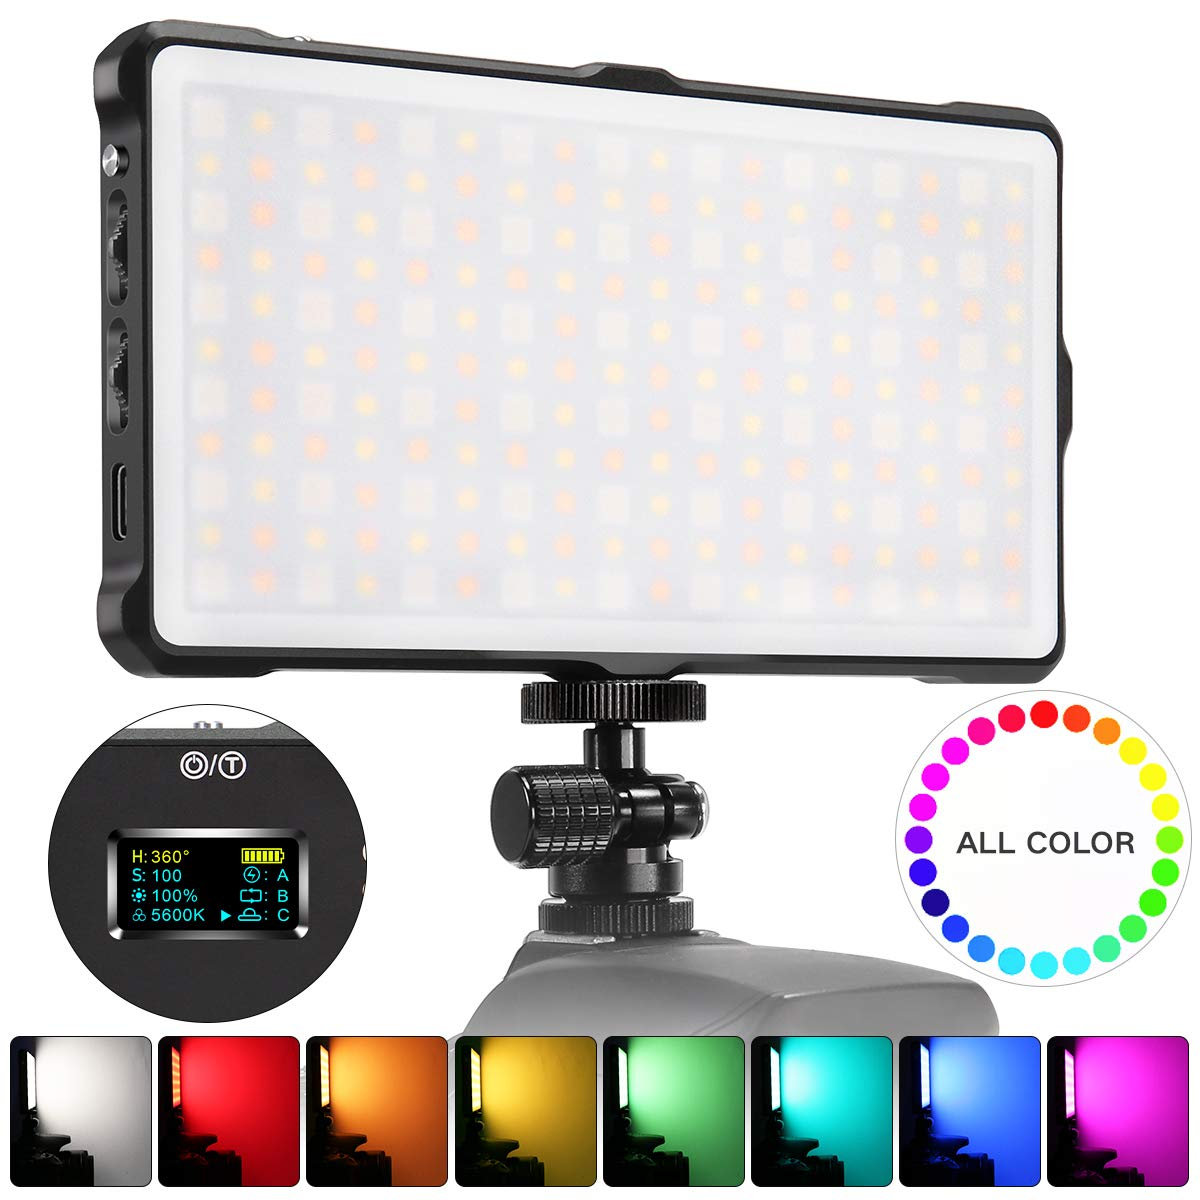 Pixel RGB LED Video Light On-Camera Video Light for DLSR Camera Camcorder with Built-in 4040 mAh Rechargeable Battery 0-360 Full Color Mini Pocket Size 3200-5600k Bi-Color CRI/TLCI 97+ by PIXEL